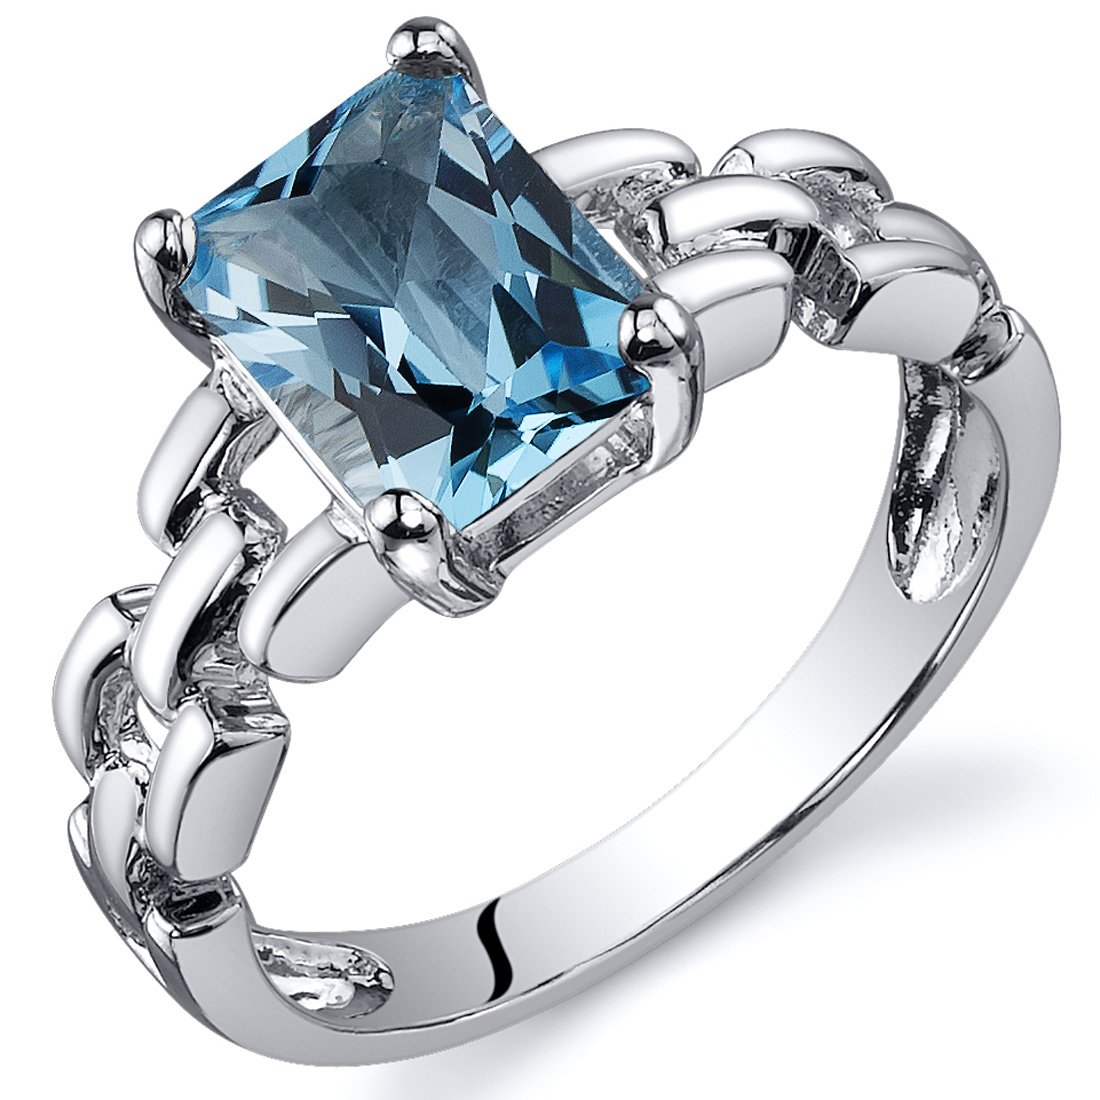 Swiss Blue Topaz Ring Sterling Silver Rhodium Nickel Finish Chainlink Style 1.75 Carats Sizes 5 to 9